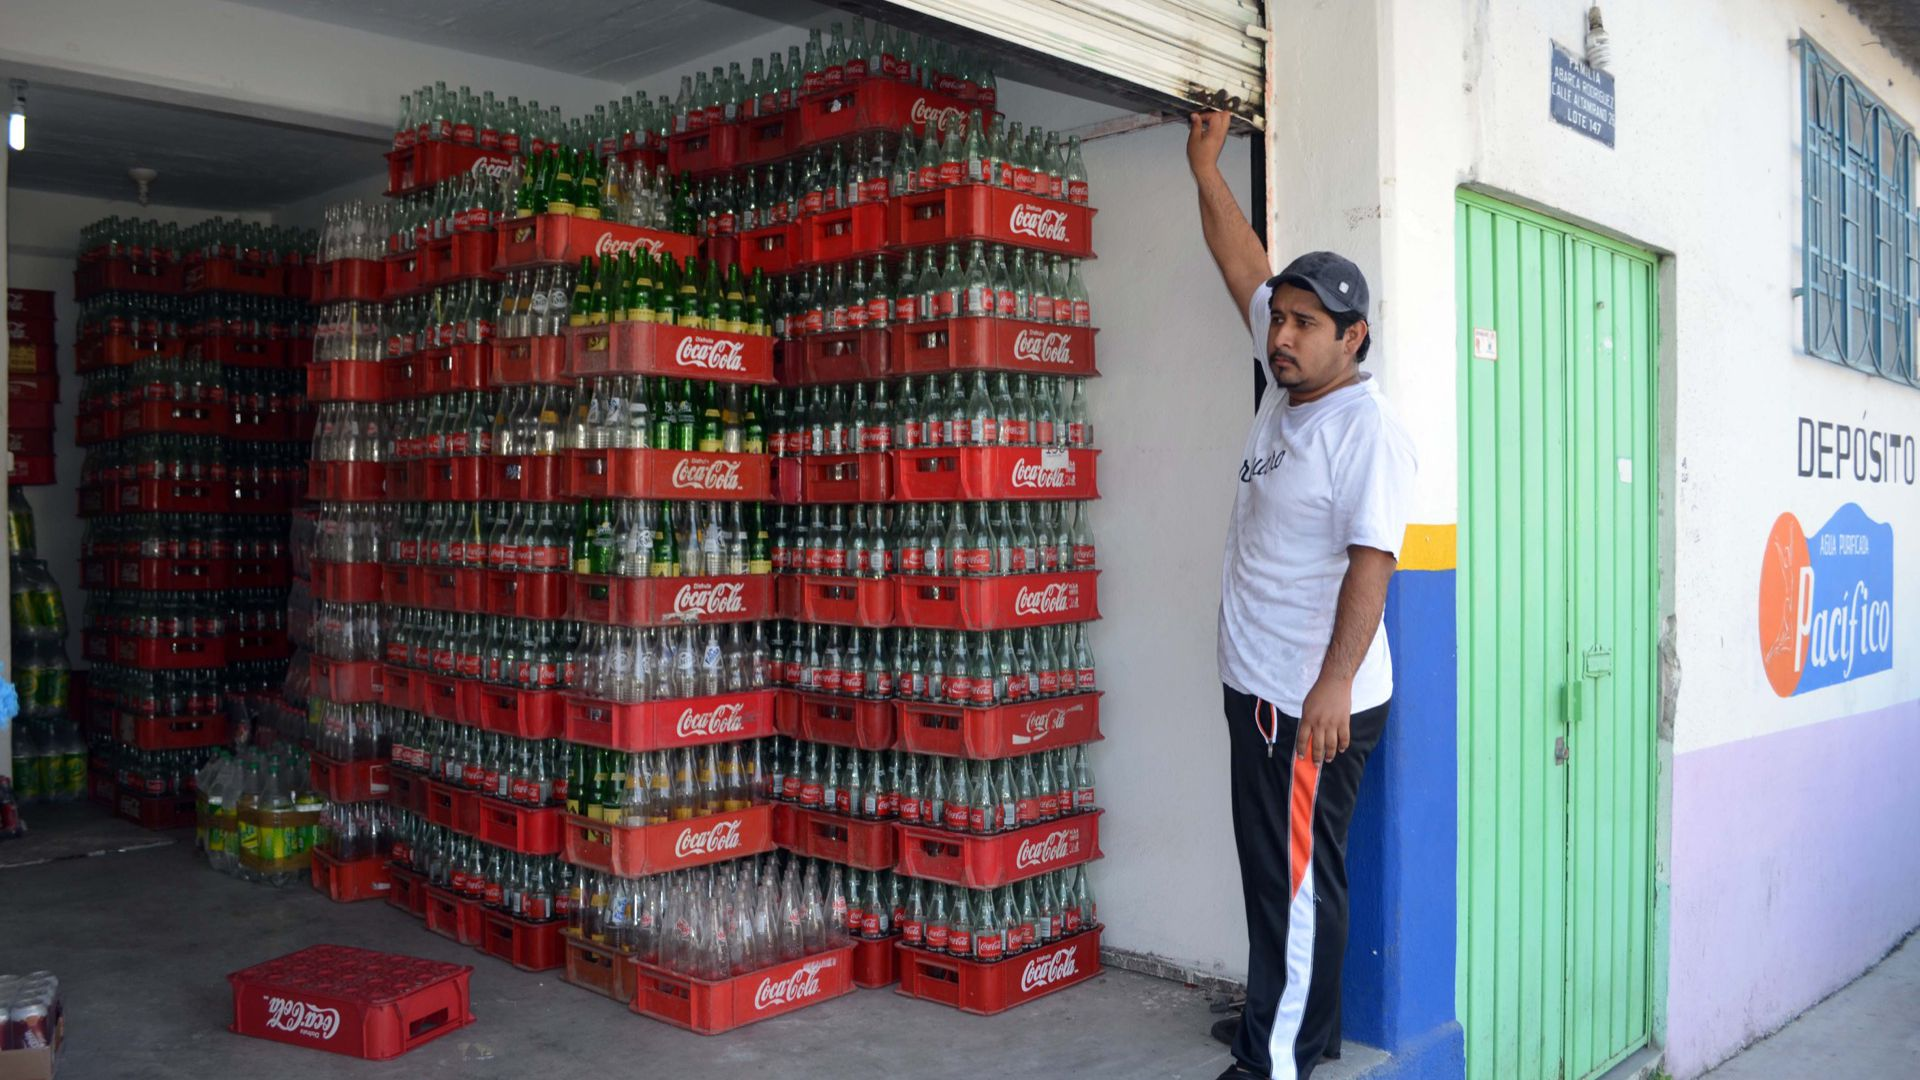 An man at a beverage deposit with cases of mostly empty Coke bottles in Mexico